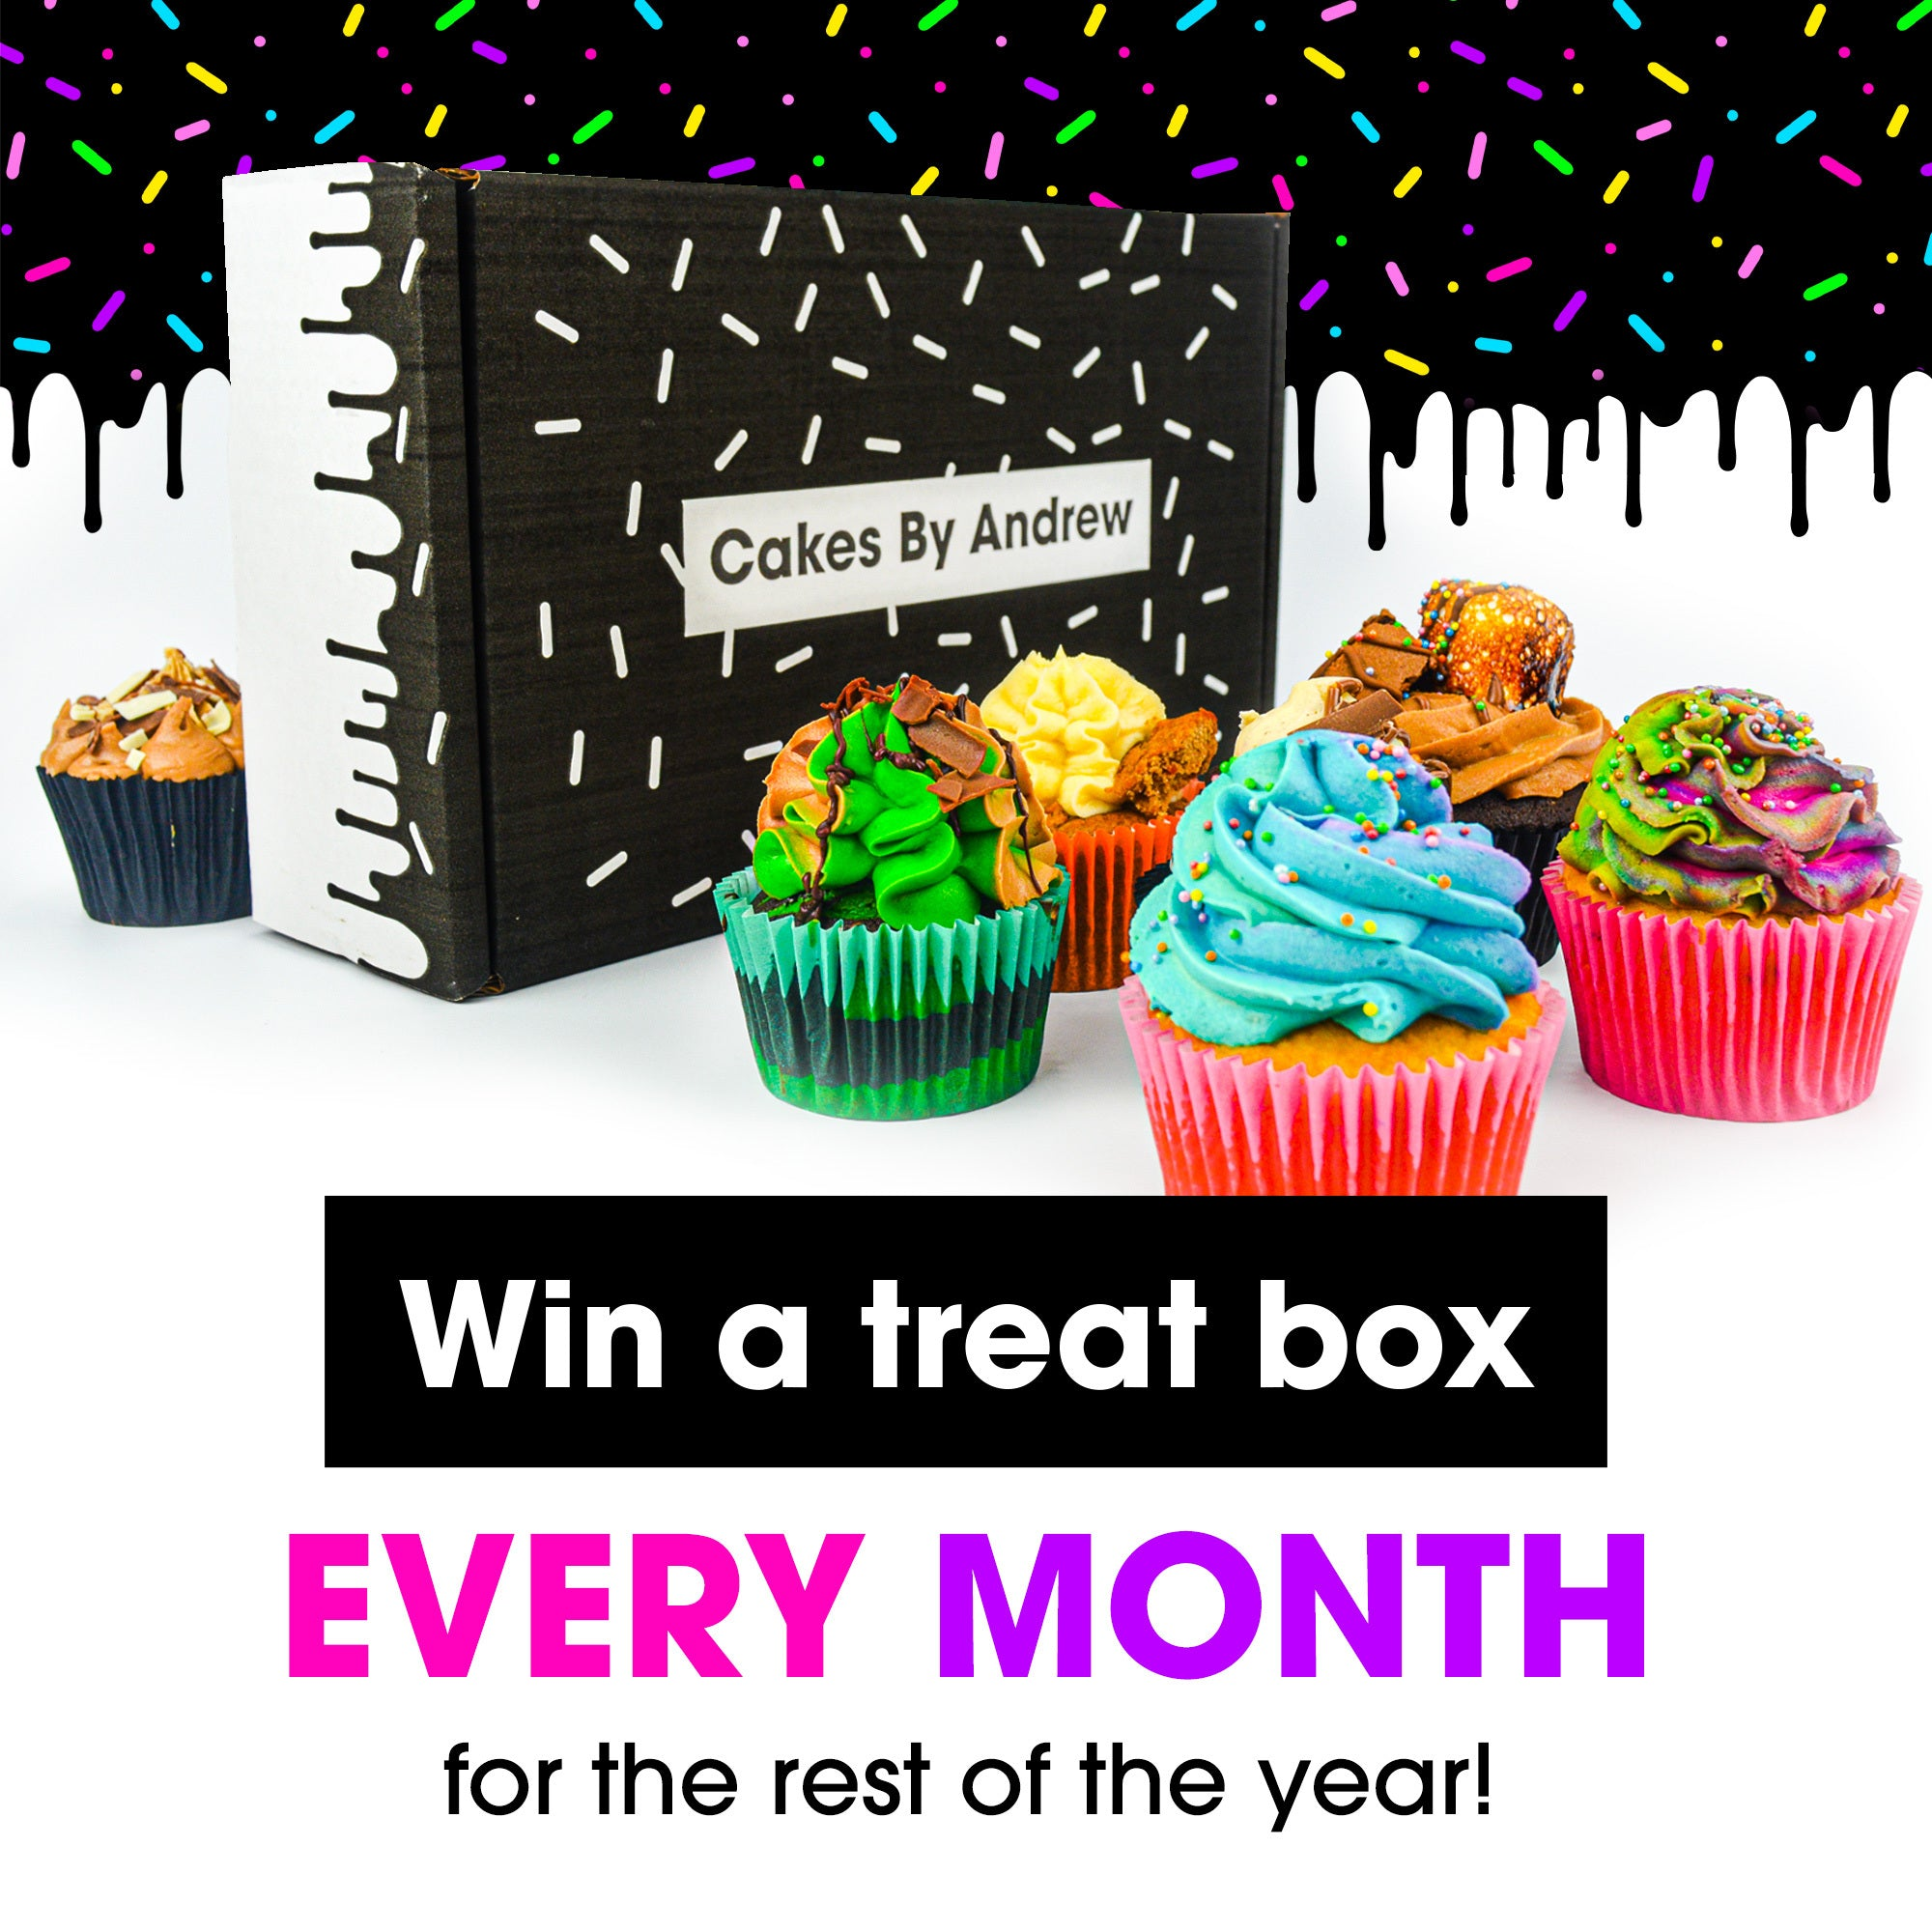 cake competition - win a treat box every month for the rest of the year